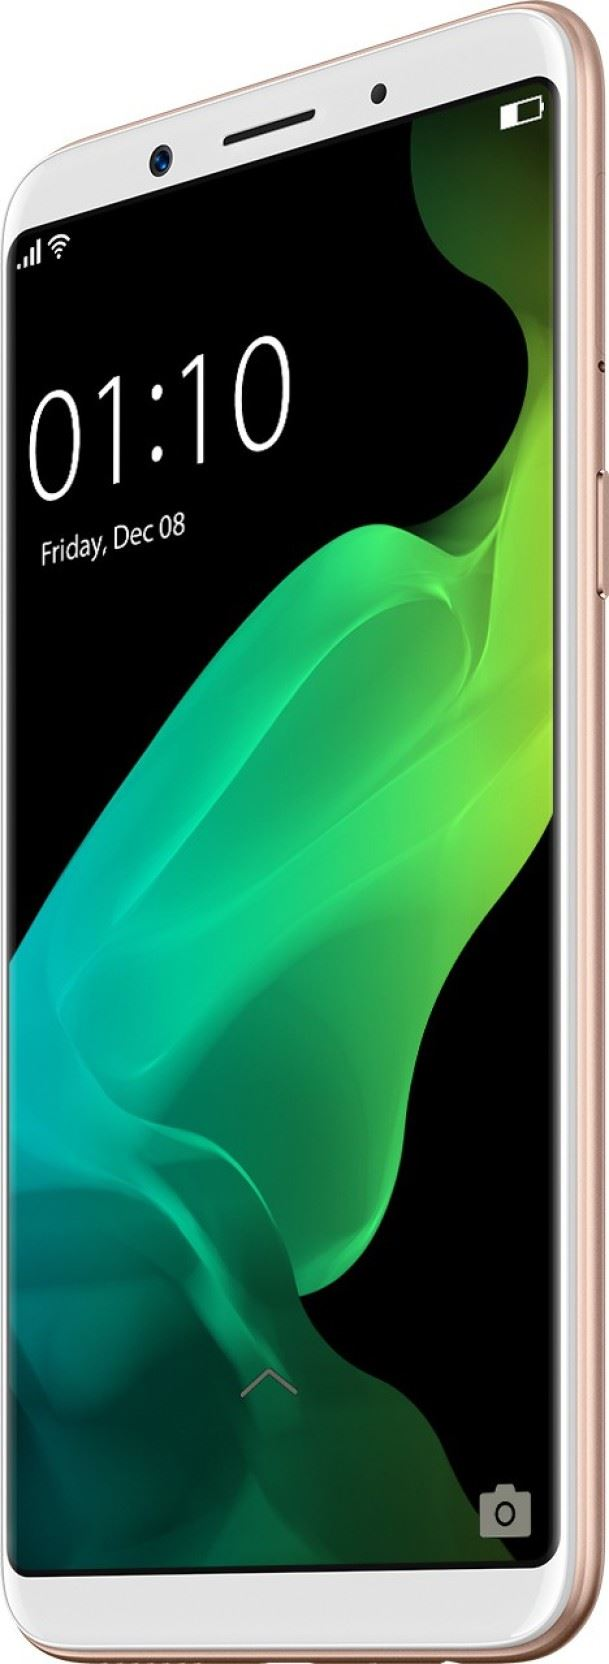 Oppo F5 Youth specs, review, release date - PhonesData